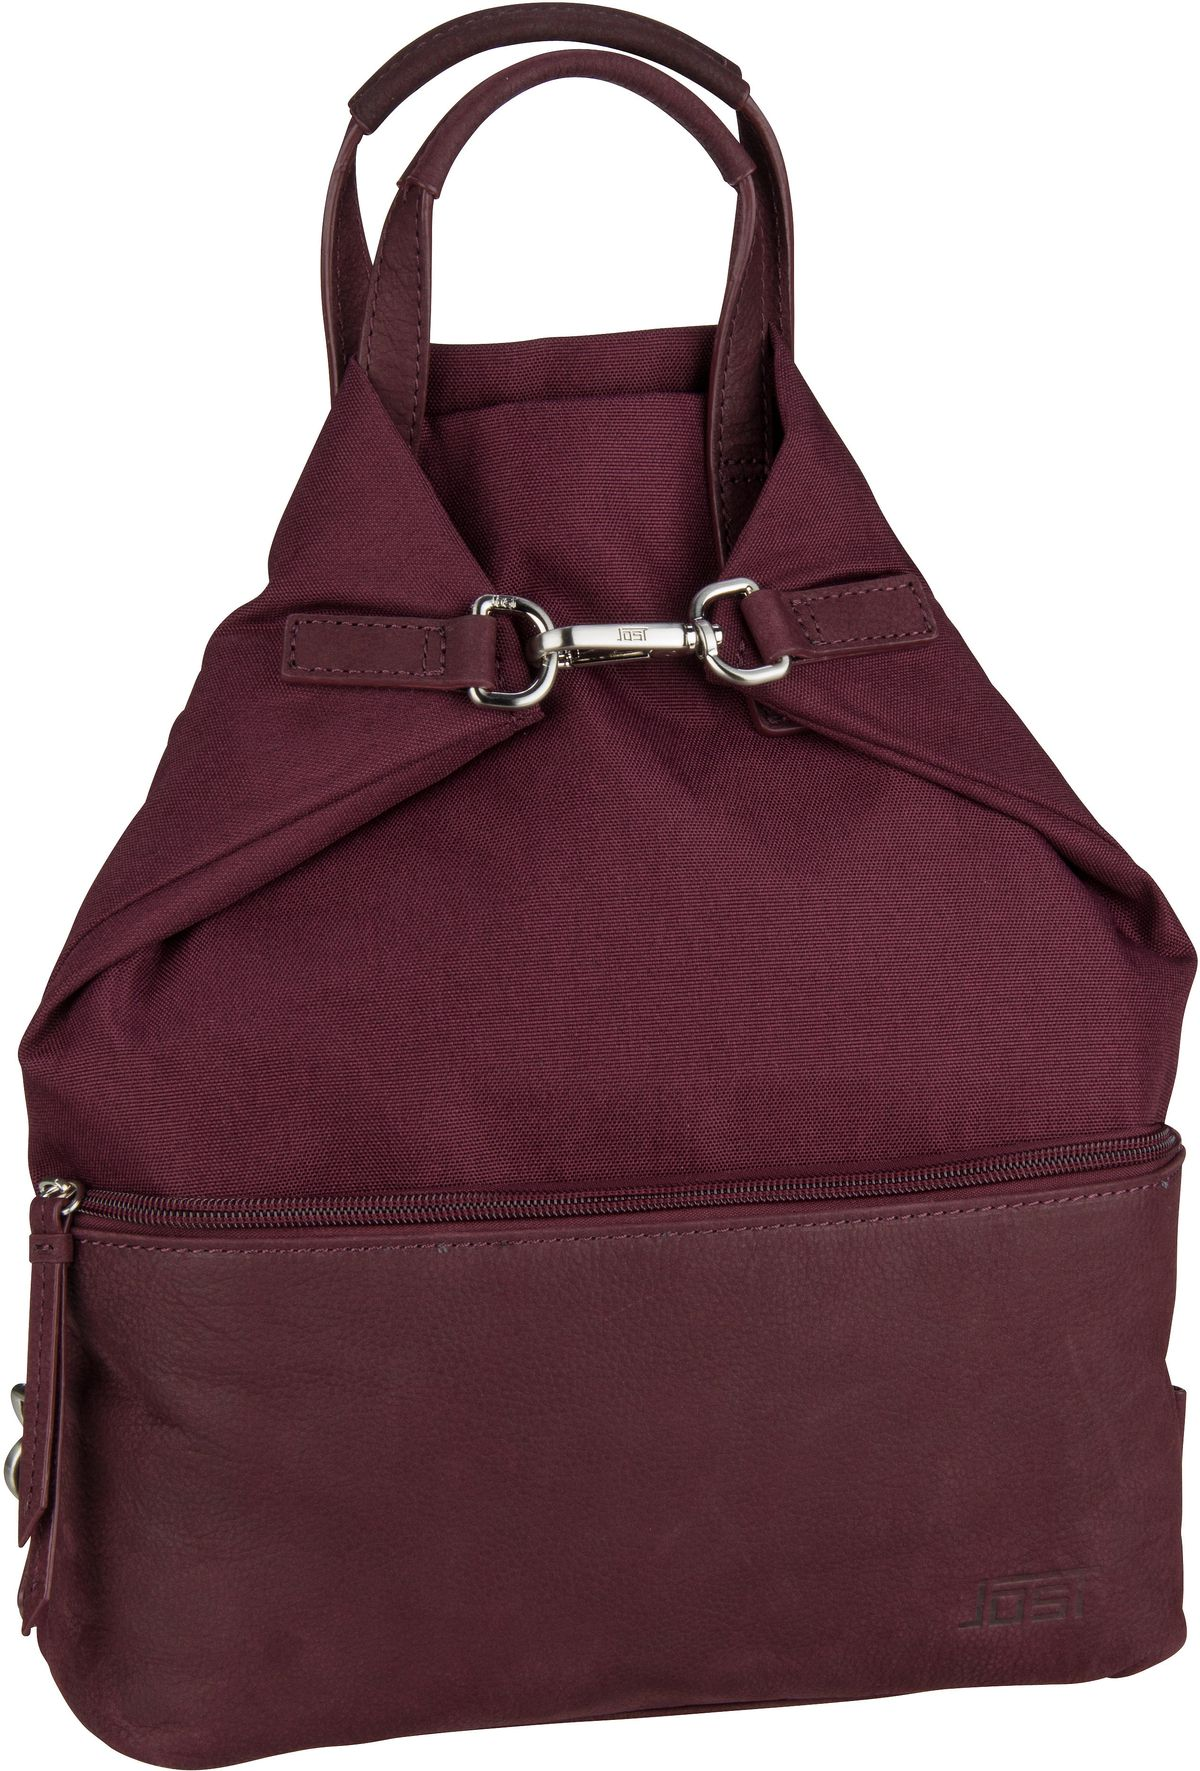 Jost Rucksack / Daypack 2716 X-Change Bag XS Bordeaux